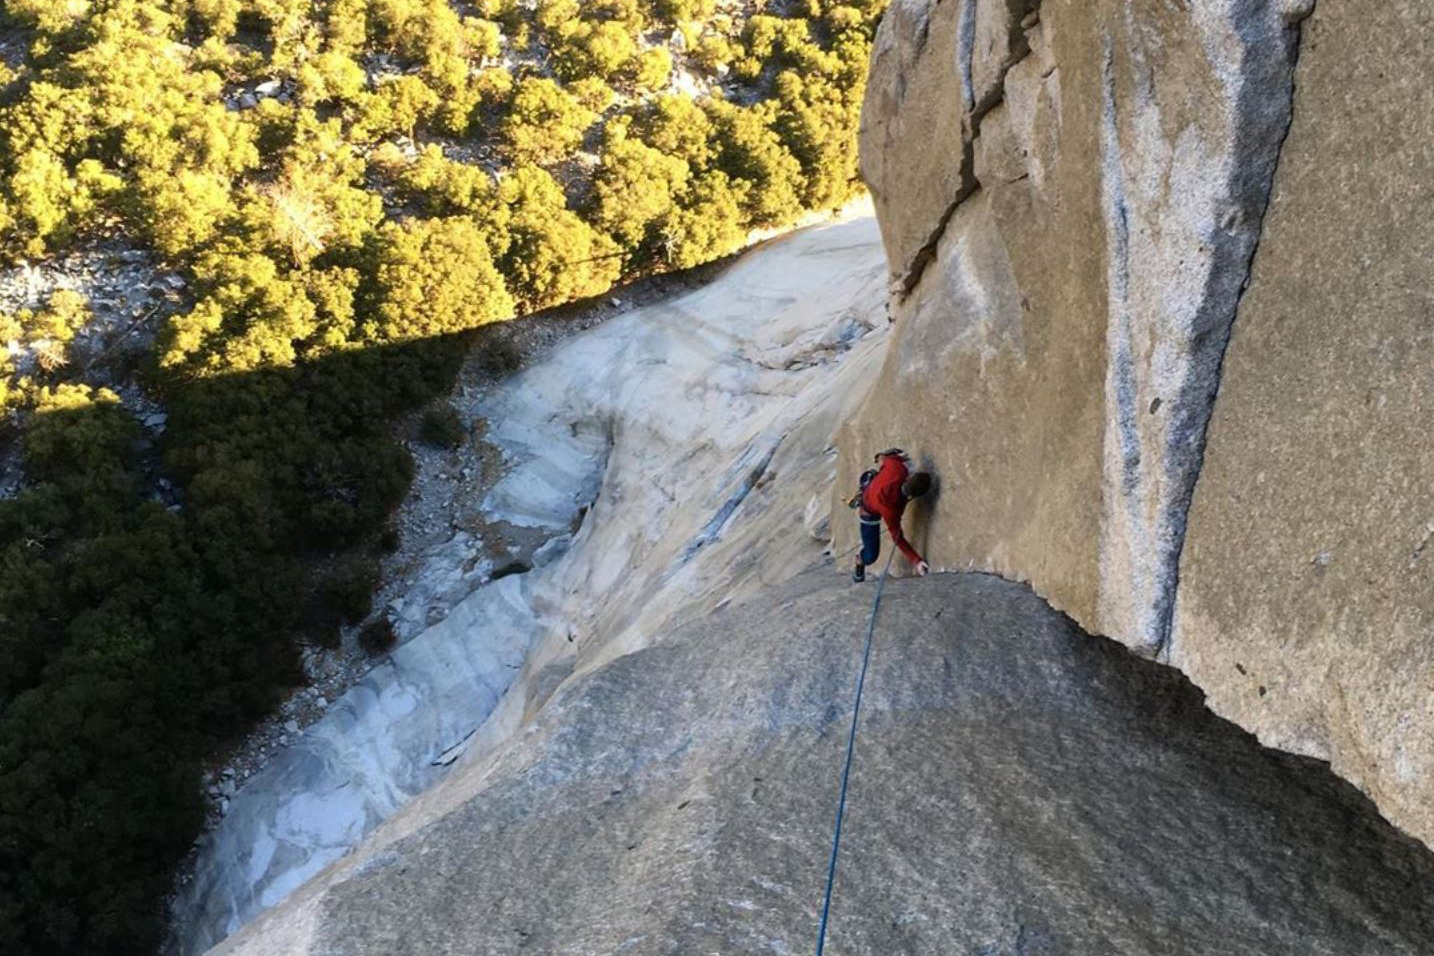 NEWS: New free line on El Capitan for Caldwell and Honnold